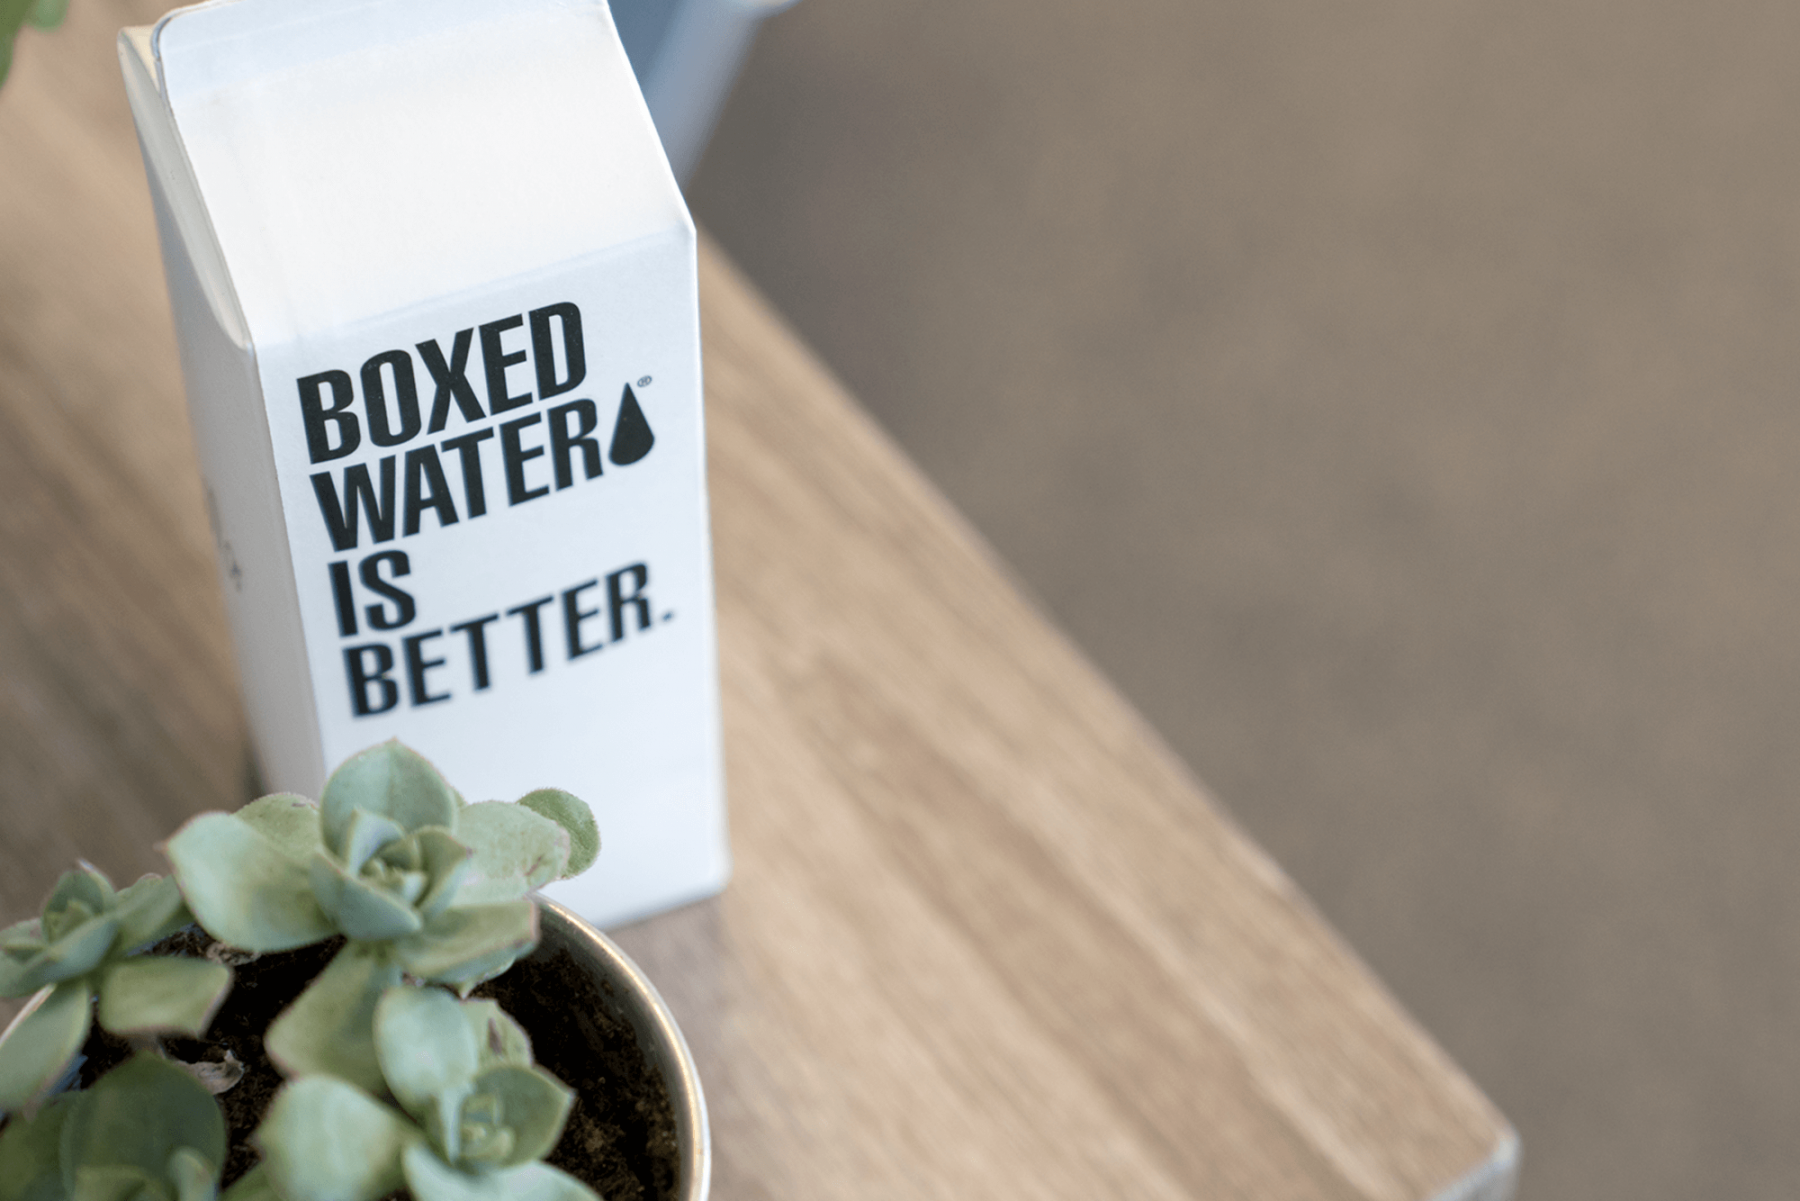 Boxed Water carton on table